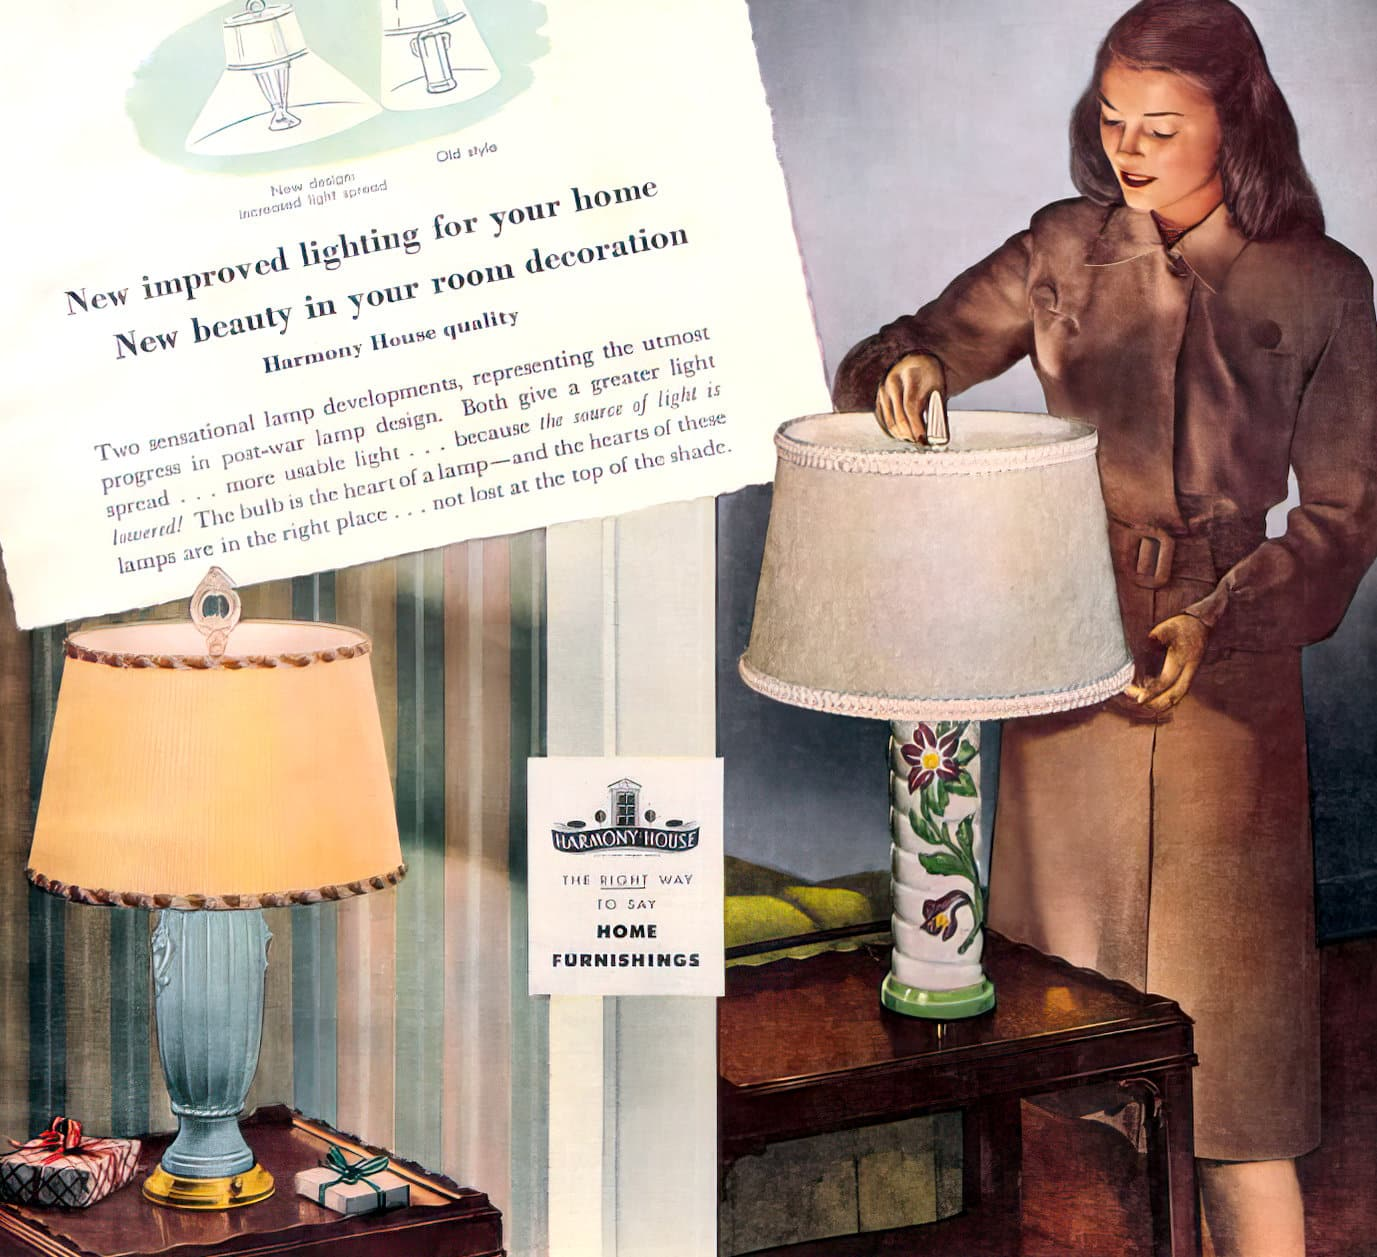 Vintage Sears Harmony House table lamps from 1946